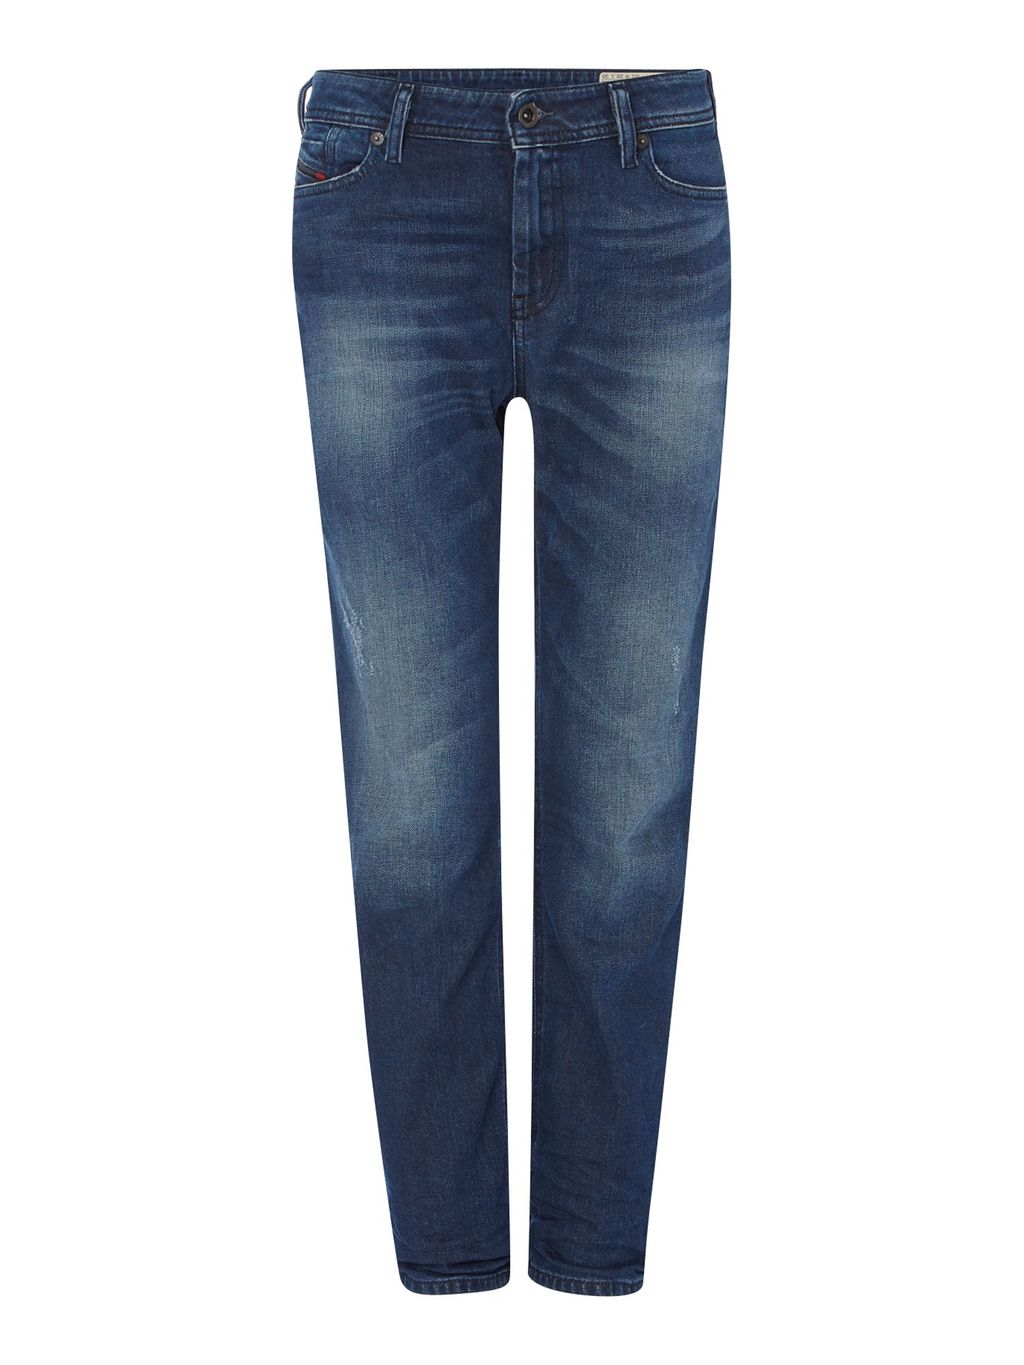 Reen 0853 U Regular Straight Jeans Leg 30, Blue - style: straight leg; length: standard; pattern: plain; pocket detail: traditional 5 pocket; waist: mid/regular rise; predominant colour: navy; occasions: casual; fibres: cotton - stretch; jeans detail: whiskering; texture group: denim; pattern type: fabric; season: s/s 2016; wardrobe: basic